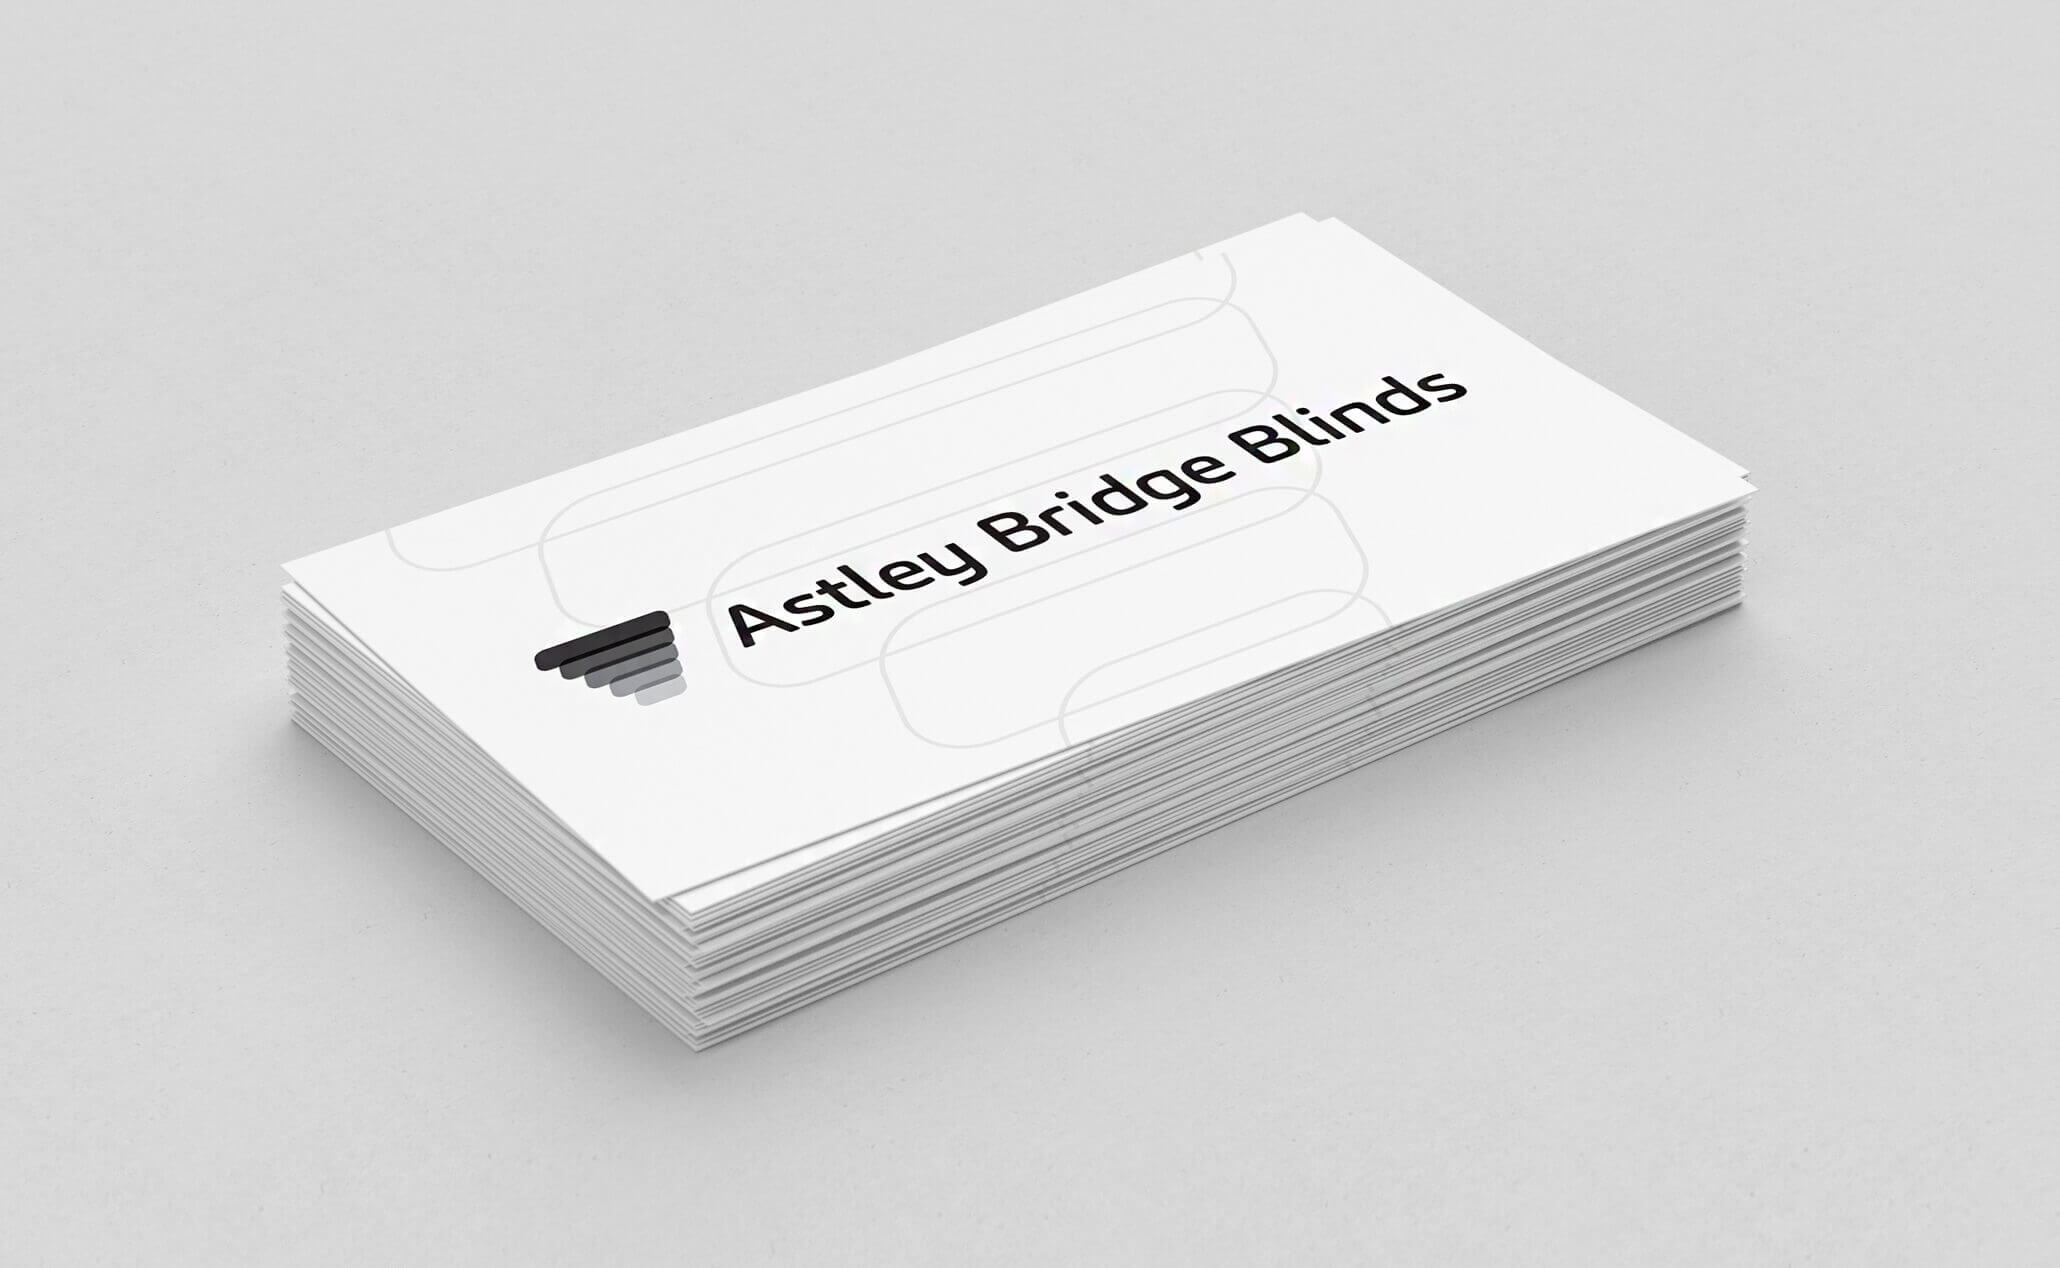 Astley-Bridge-Blinds-business-cards